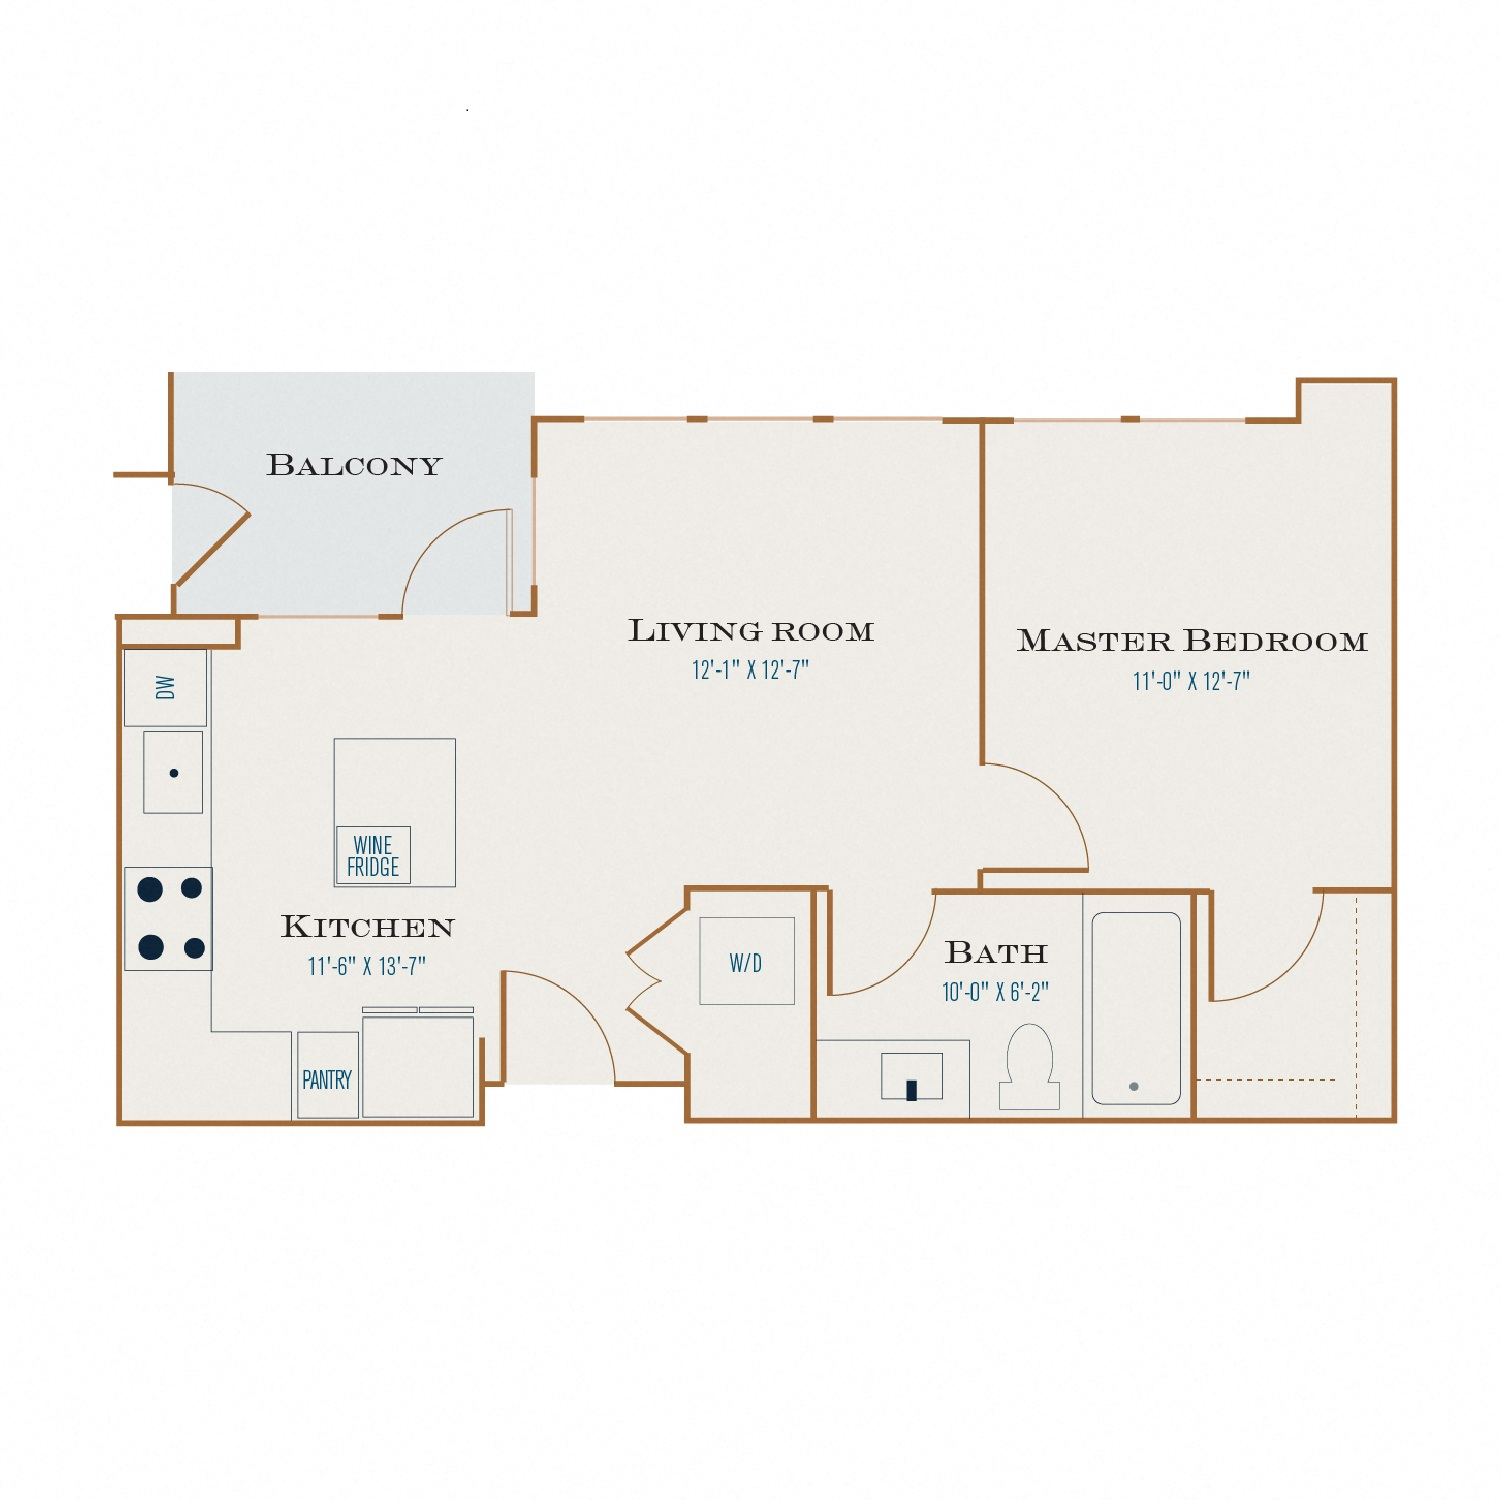 A One floor plan diagram. One bedroom, one bathroom, an open kitchen and living area, a balcony, and a washer dryer.